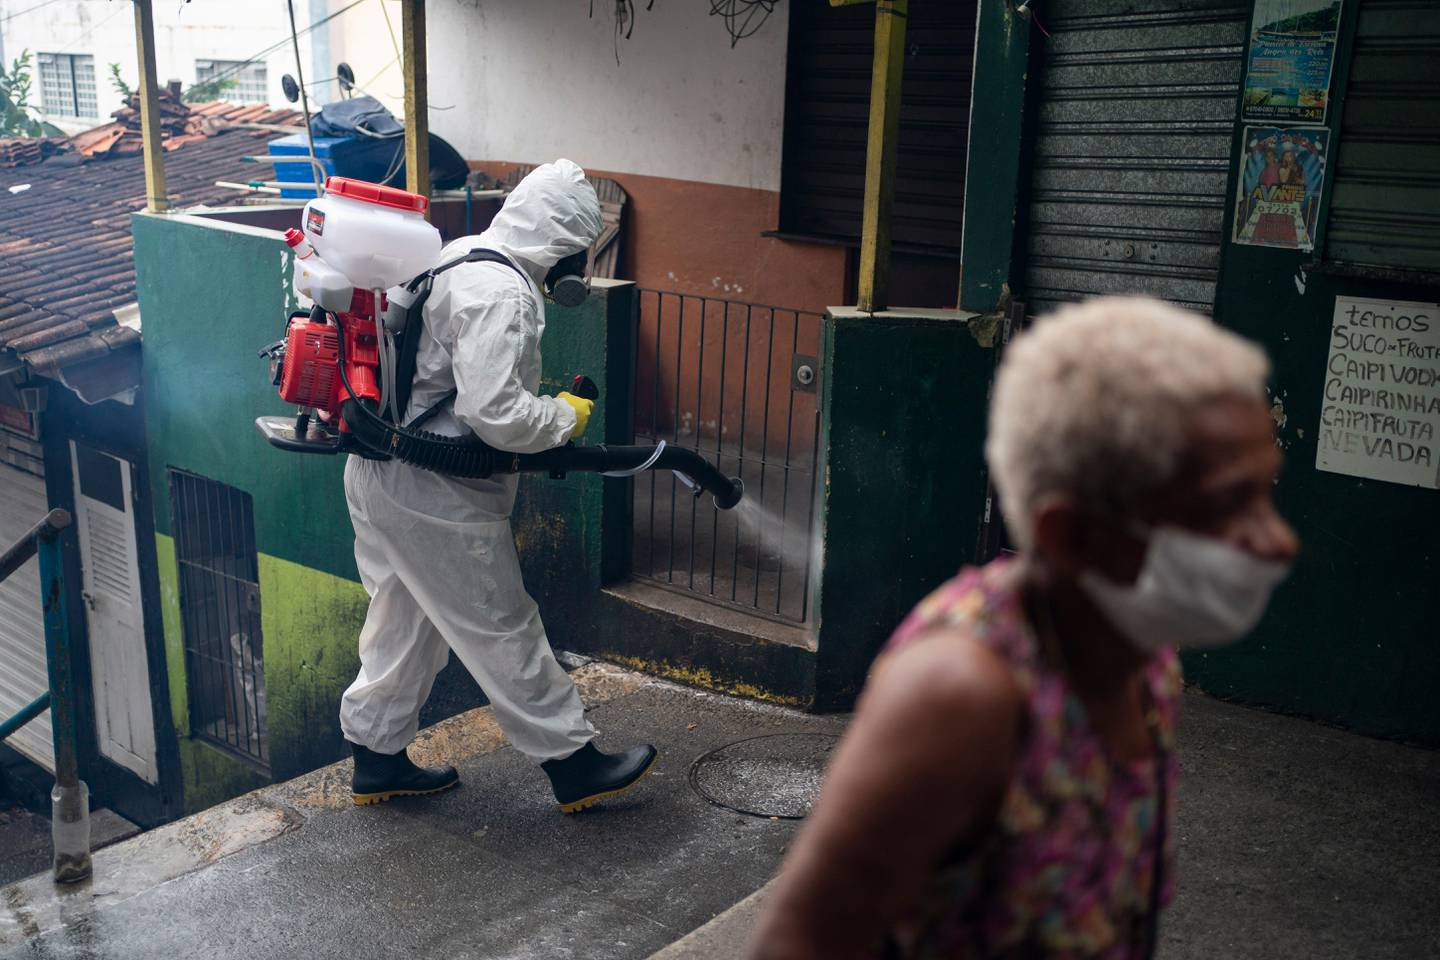 Thiago Firmino sprays disinfectant on an alley to avoid the spread the new corona virus at Santa Marta slum in Rio de Janeiro, Brazil, Friday, April 10, 2020. Firmino, who works as a tourist guide in the favela, helped organize a group to buy sanitization equipment with donated funds and are now disinfecting the alleyways of the favela. (AP Photo/Leo Correa)